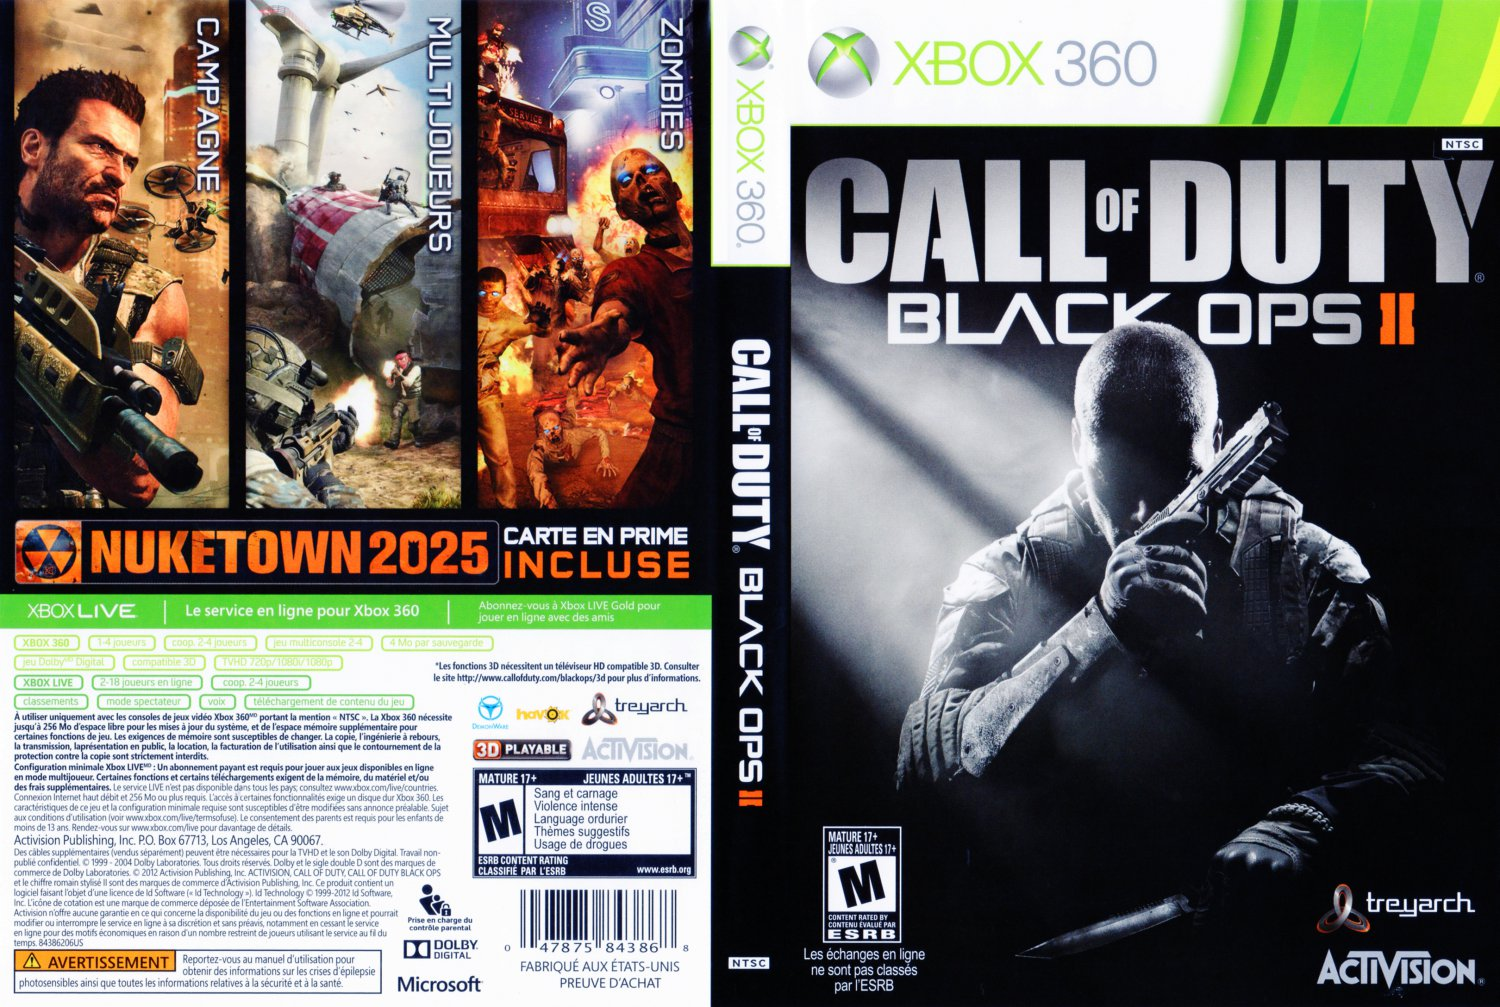 call of duty black ops ii xbox 360 game covers call of. Black Bedroom Furniture Sets. Home Design Ideas